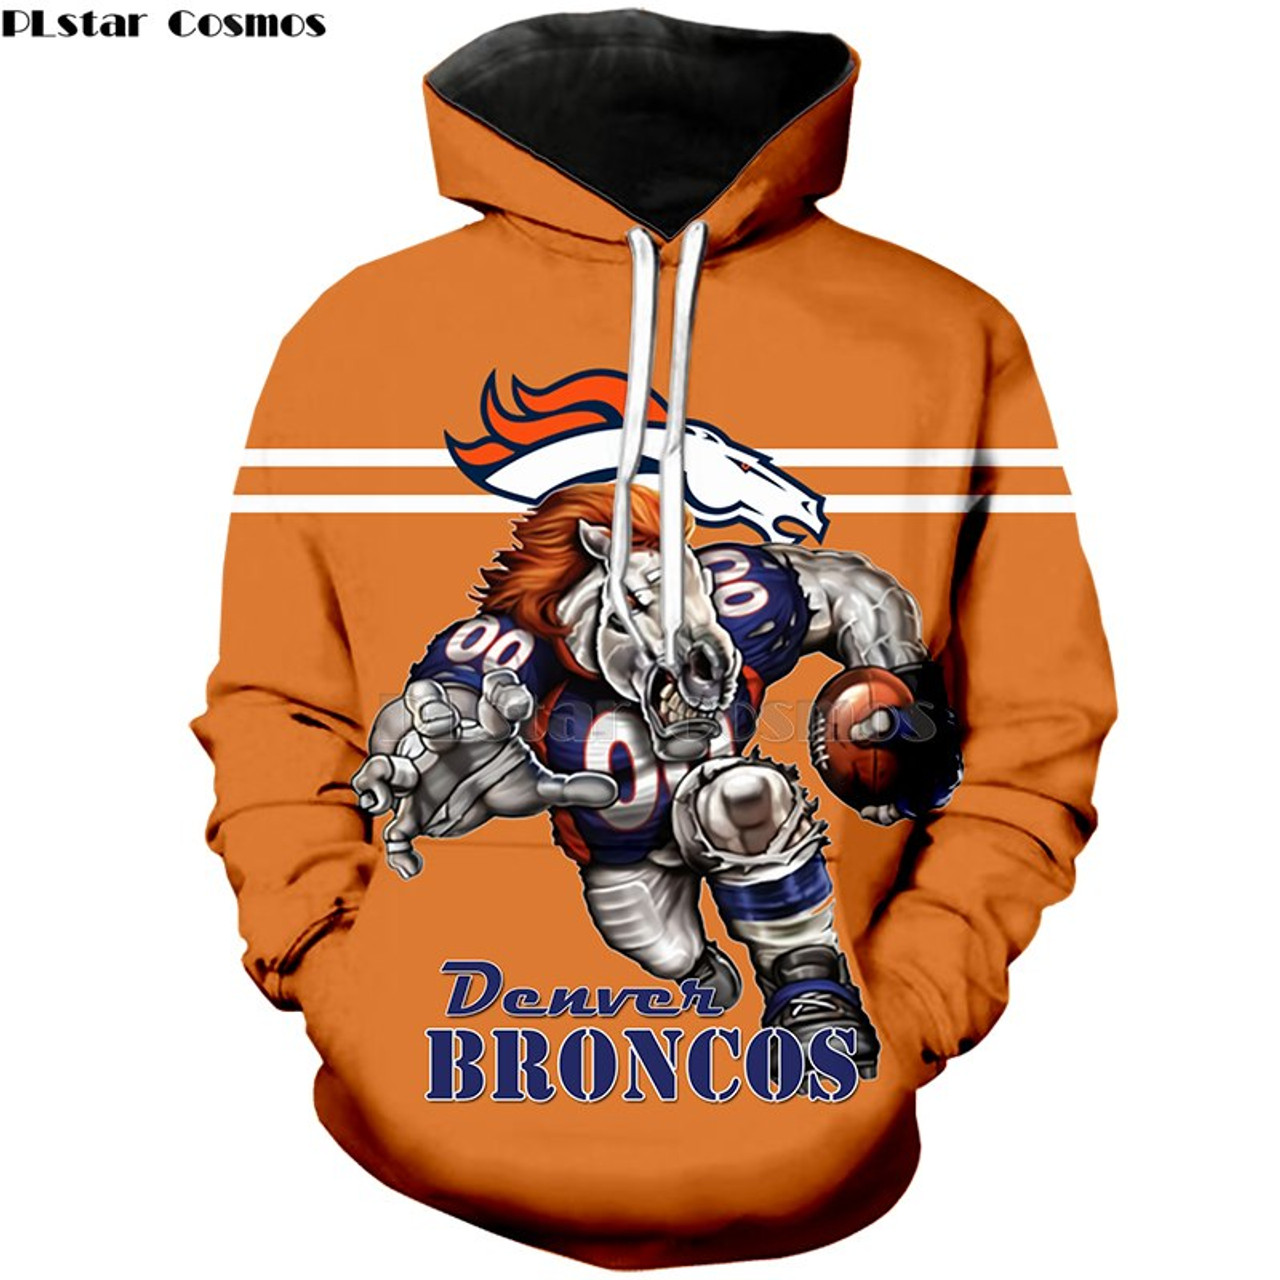 best service 5f06d d9fdb **(OFFICIALLY-LICENSED-N.F.L.  DENVER-BRONCOS-TEAM-HOODIES/NICE-CUSTOM-DETAILED-3D-GRAPHIC-PRINTED/PREMIUM-ALL-OVER-DOUBLE-SIDED-PRINT/OFFICIAL-BRONCOS...